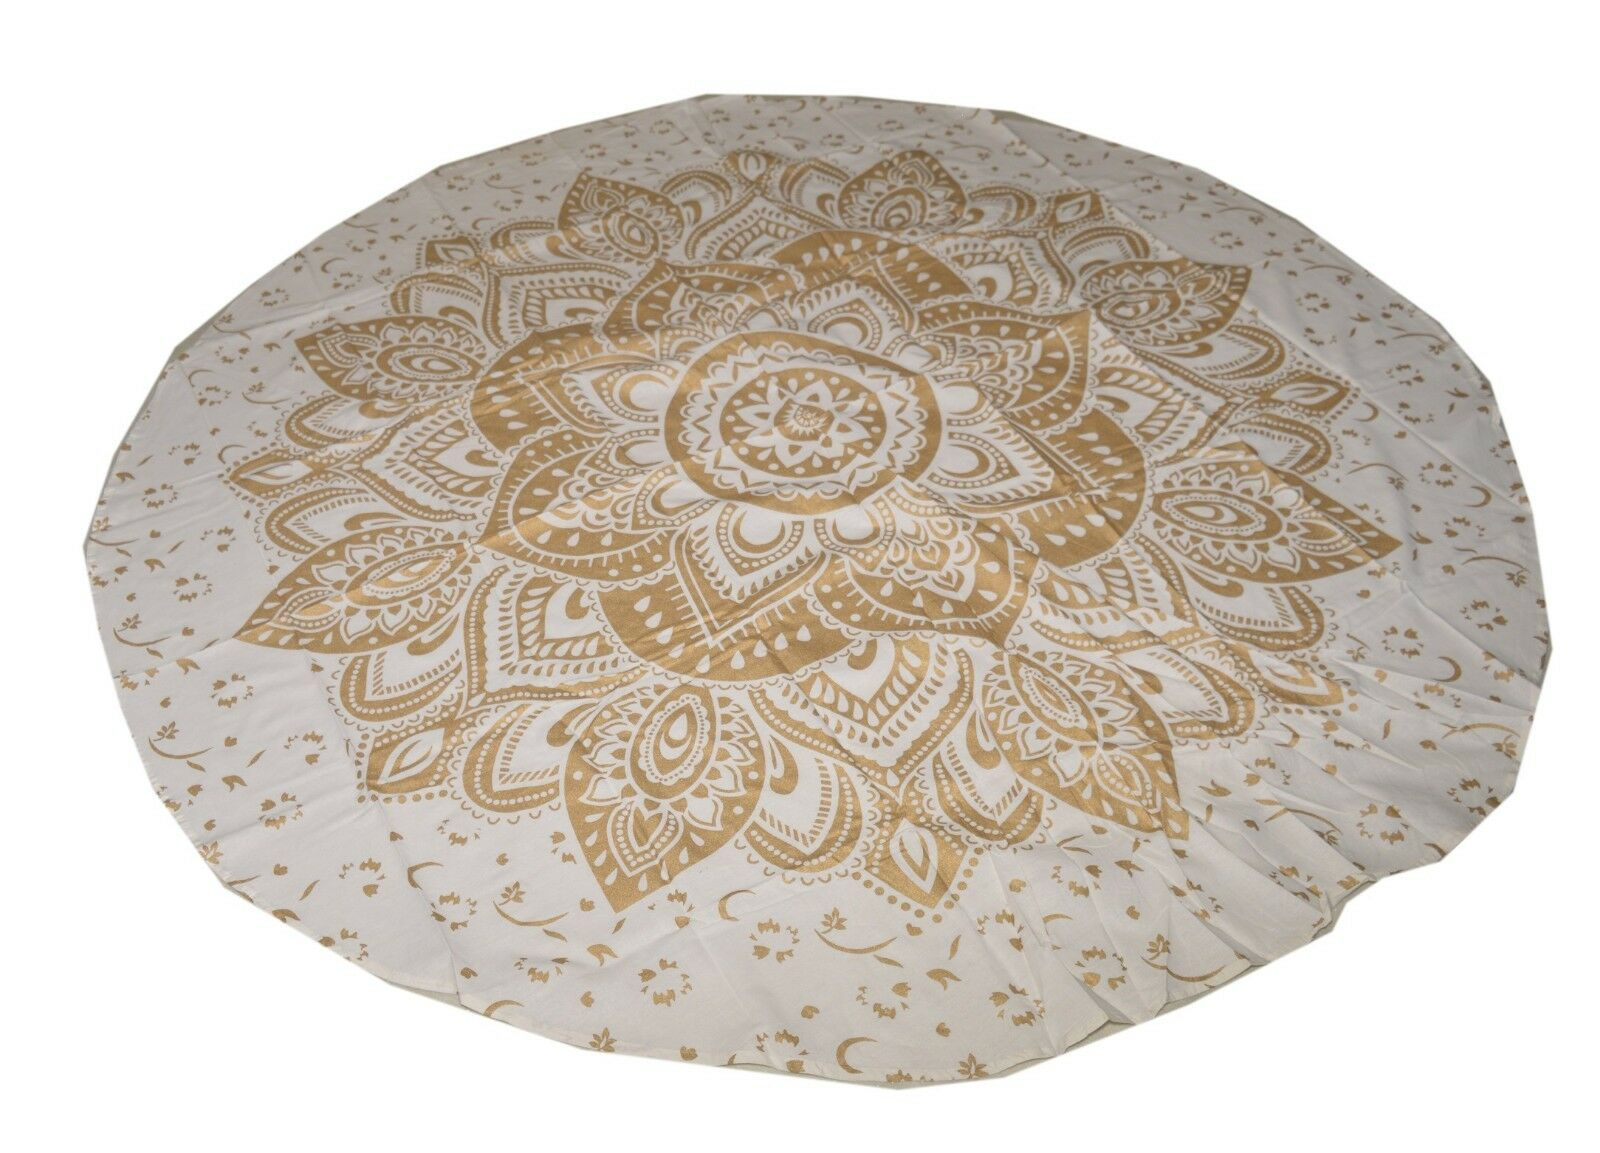 Magical Thinking Mandala Wall Hanging Ombre Bed Cover Round Beach Blanket Indian